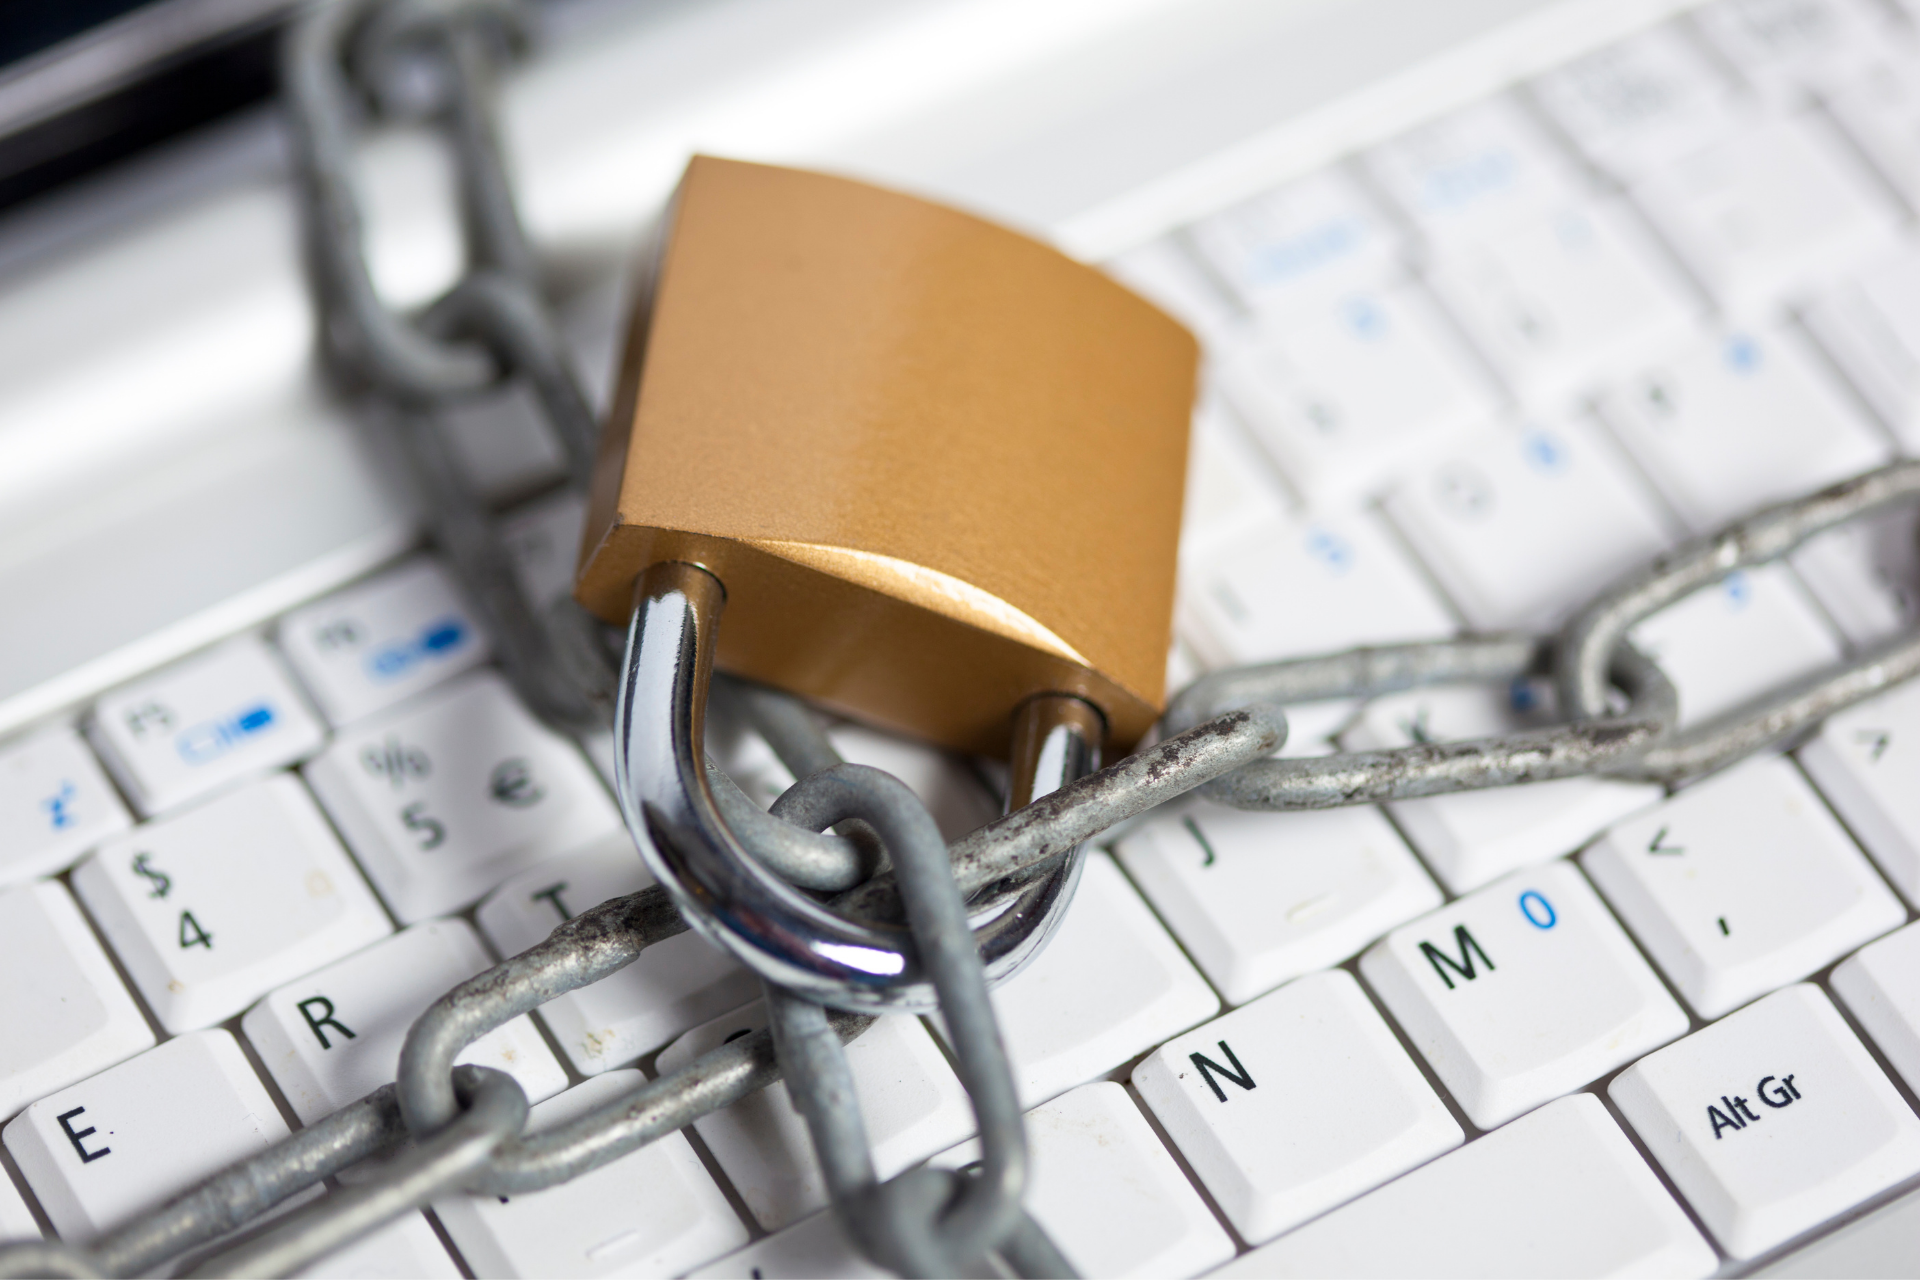 Alt text: A lock and chain on a computer keyboard.